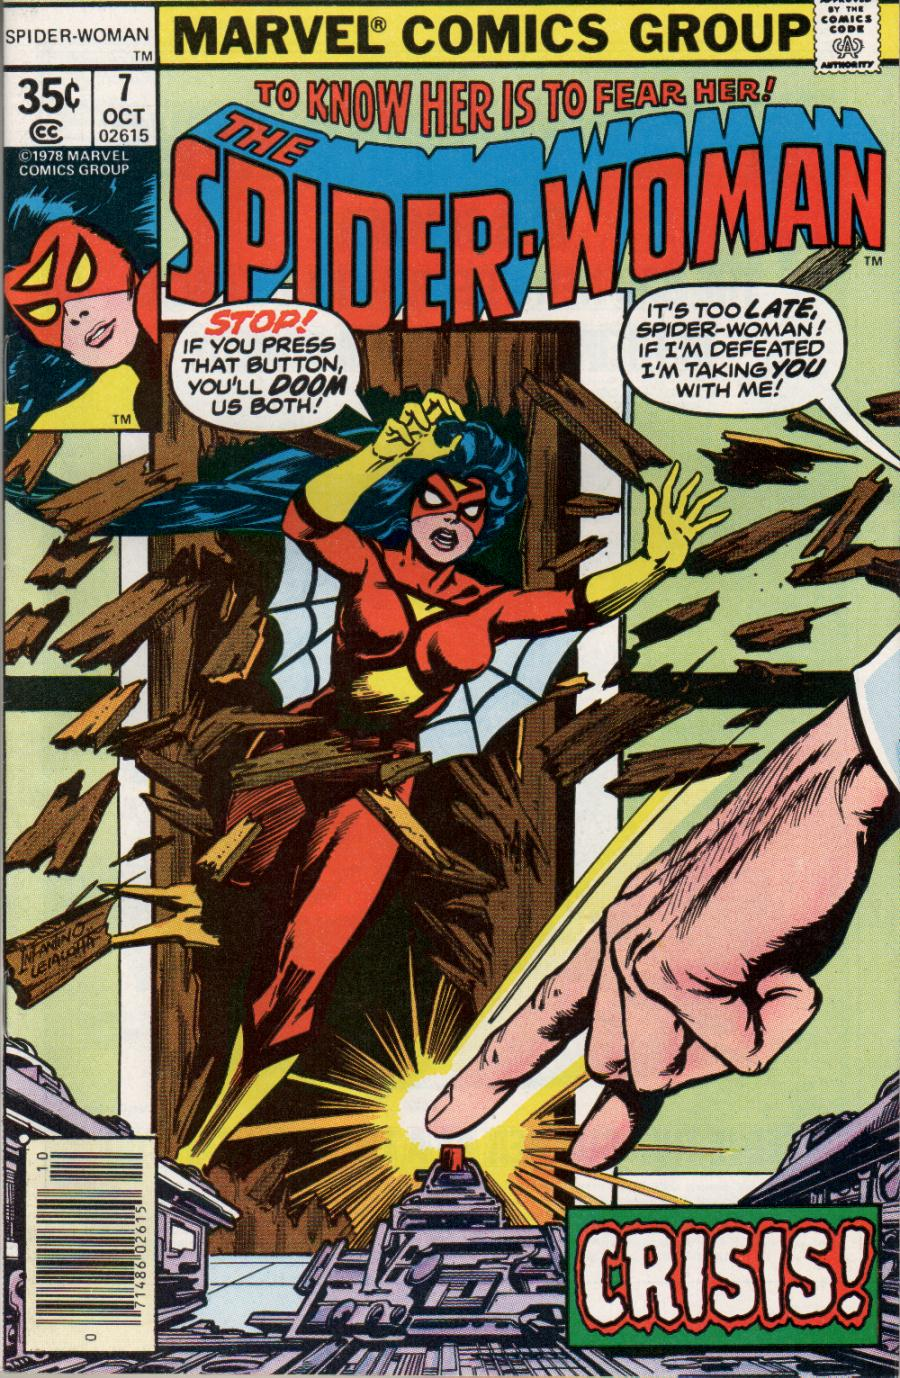 Spider-Woman (1978) #7 #44 - English 1